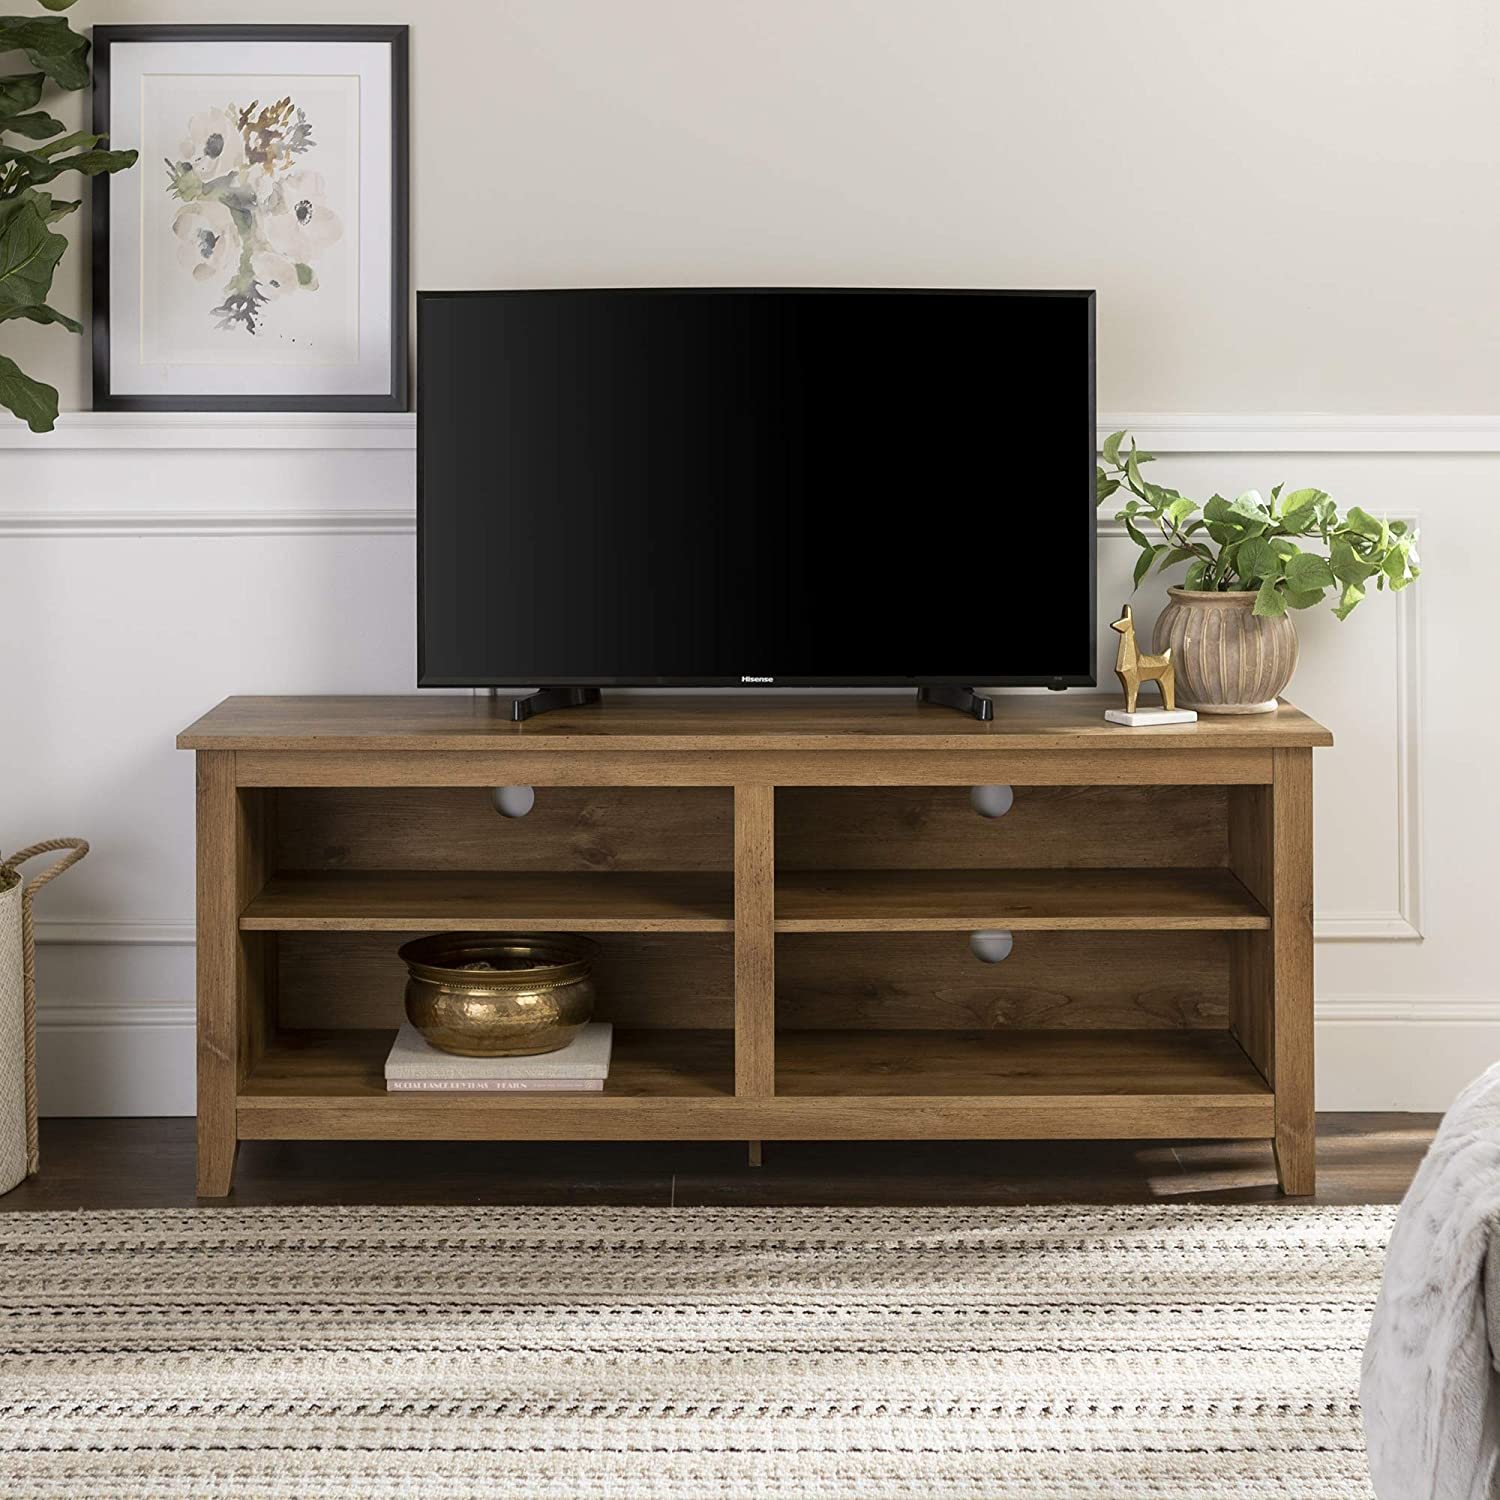 Amazon Com New 58 Inch Wide Barnwood Finish Television Stand Furniture Decor